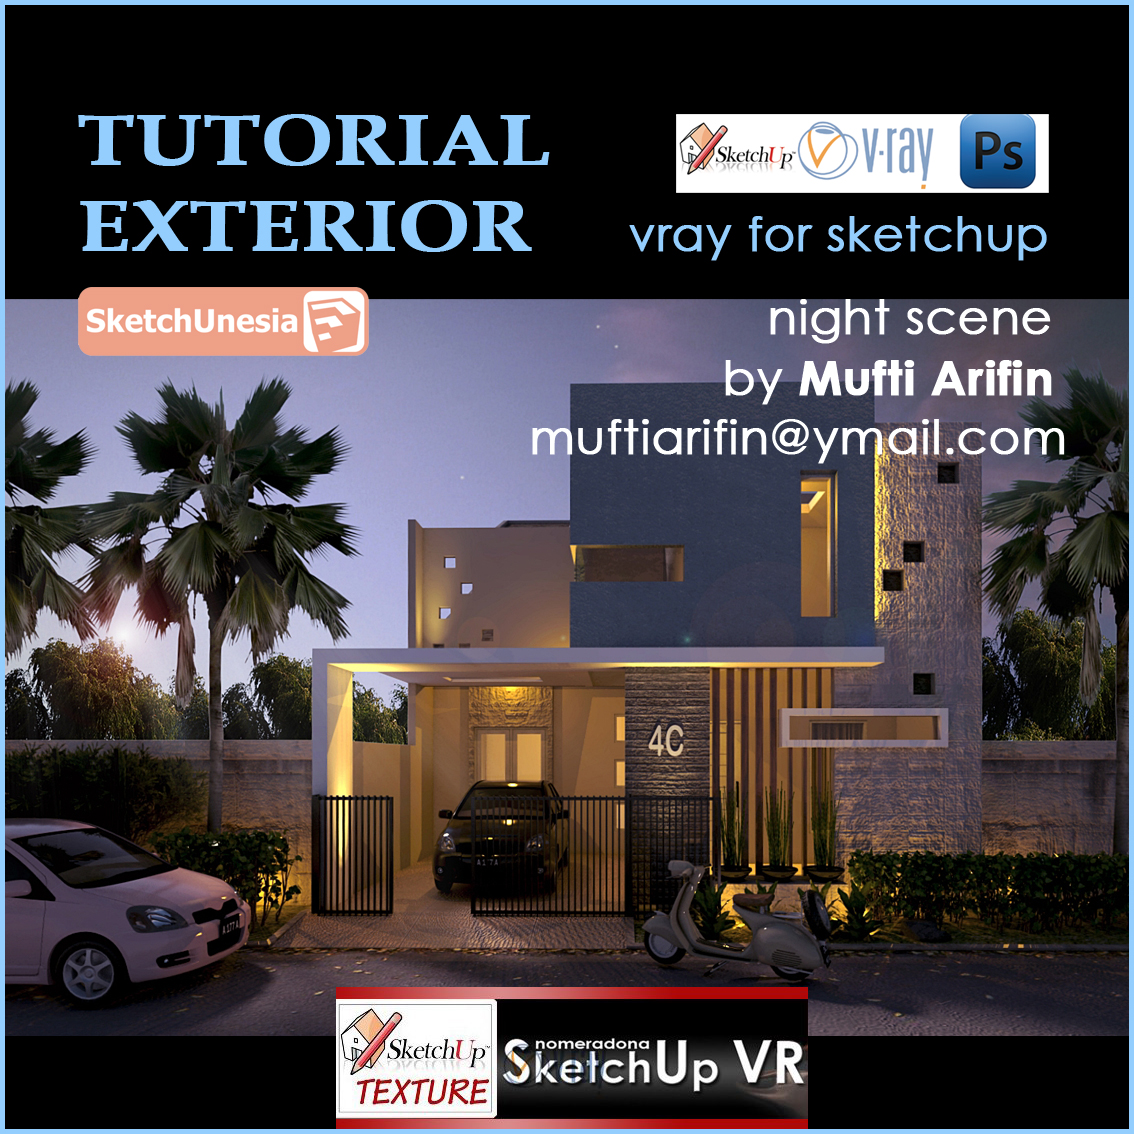 Sketchup Texture Vray Tutorial Exterior